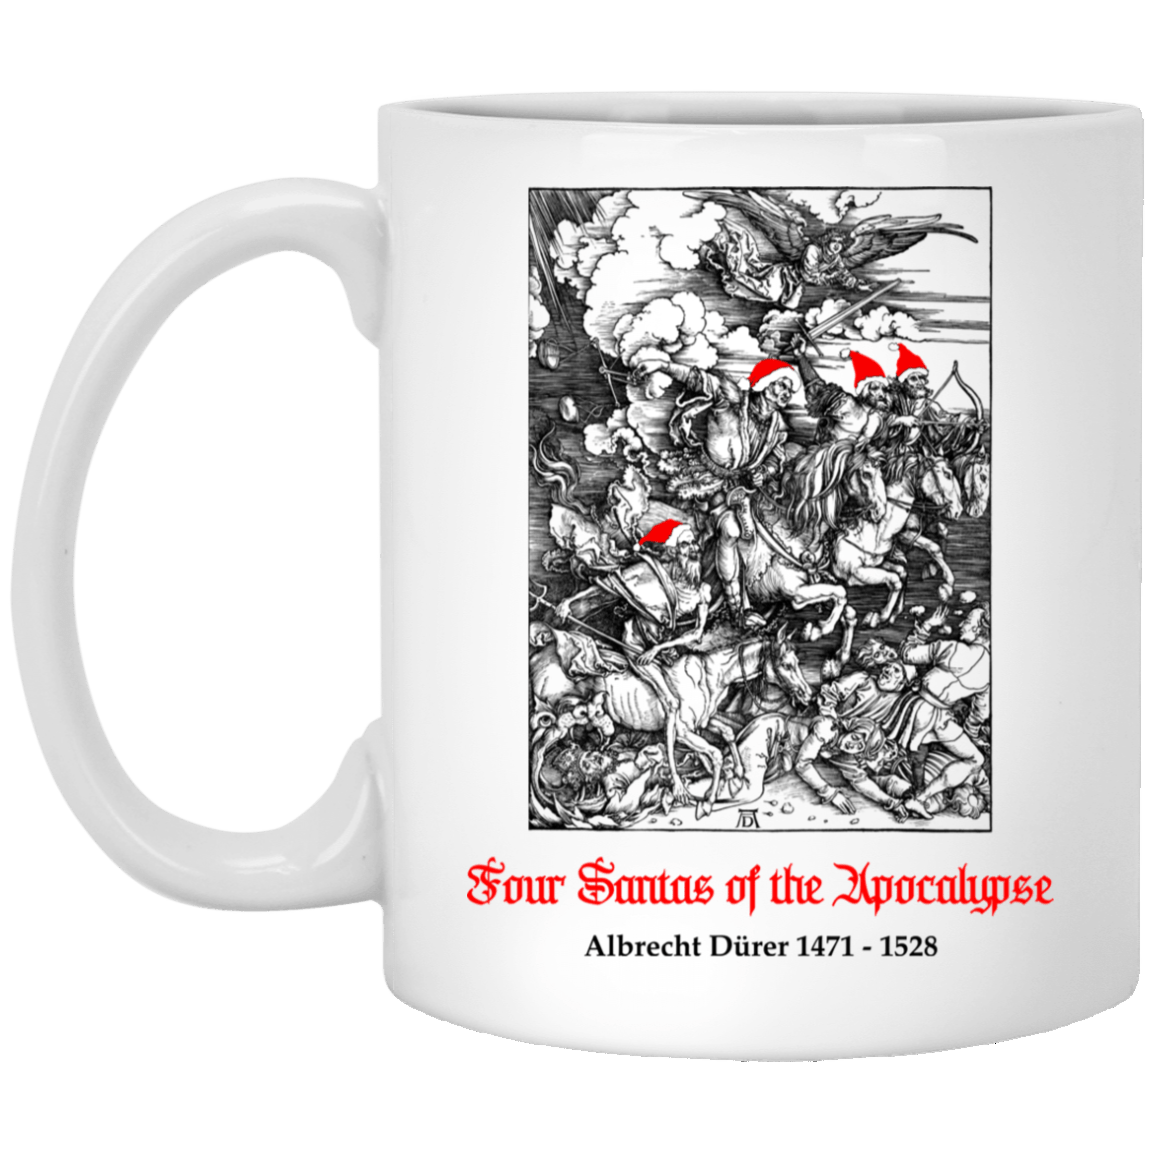 Four Santas Of The Apocalypse Albrecht Dürer 1471 1528 Mug 1005-9786-91587498-47417 - Tee Ript